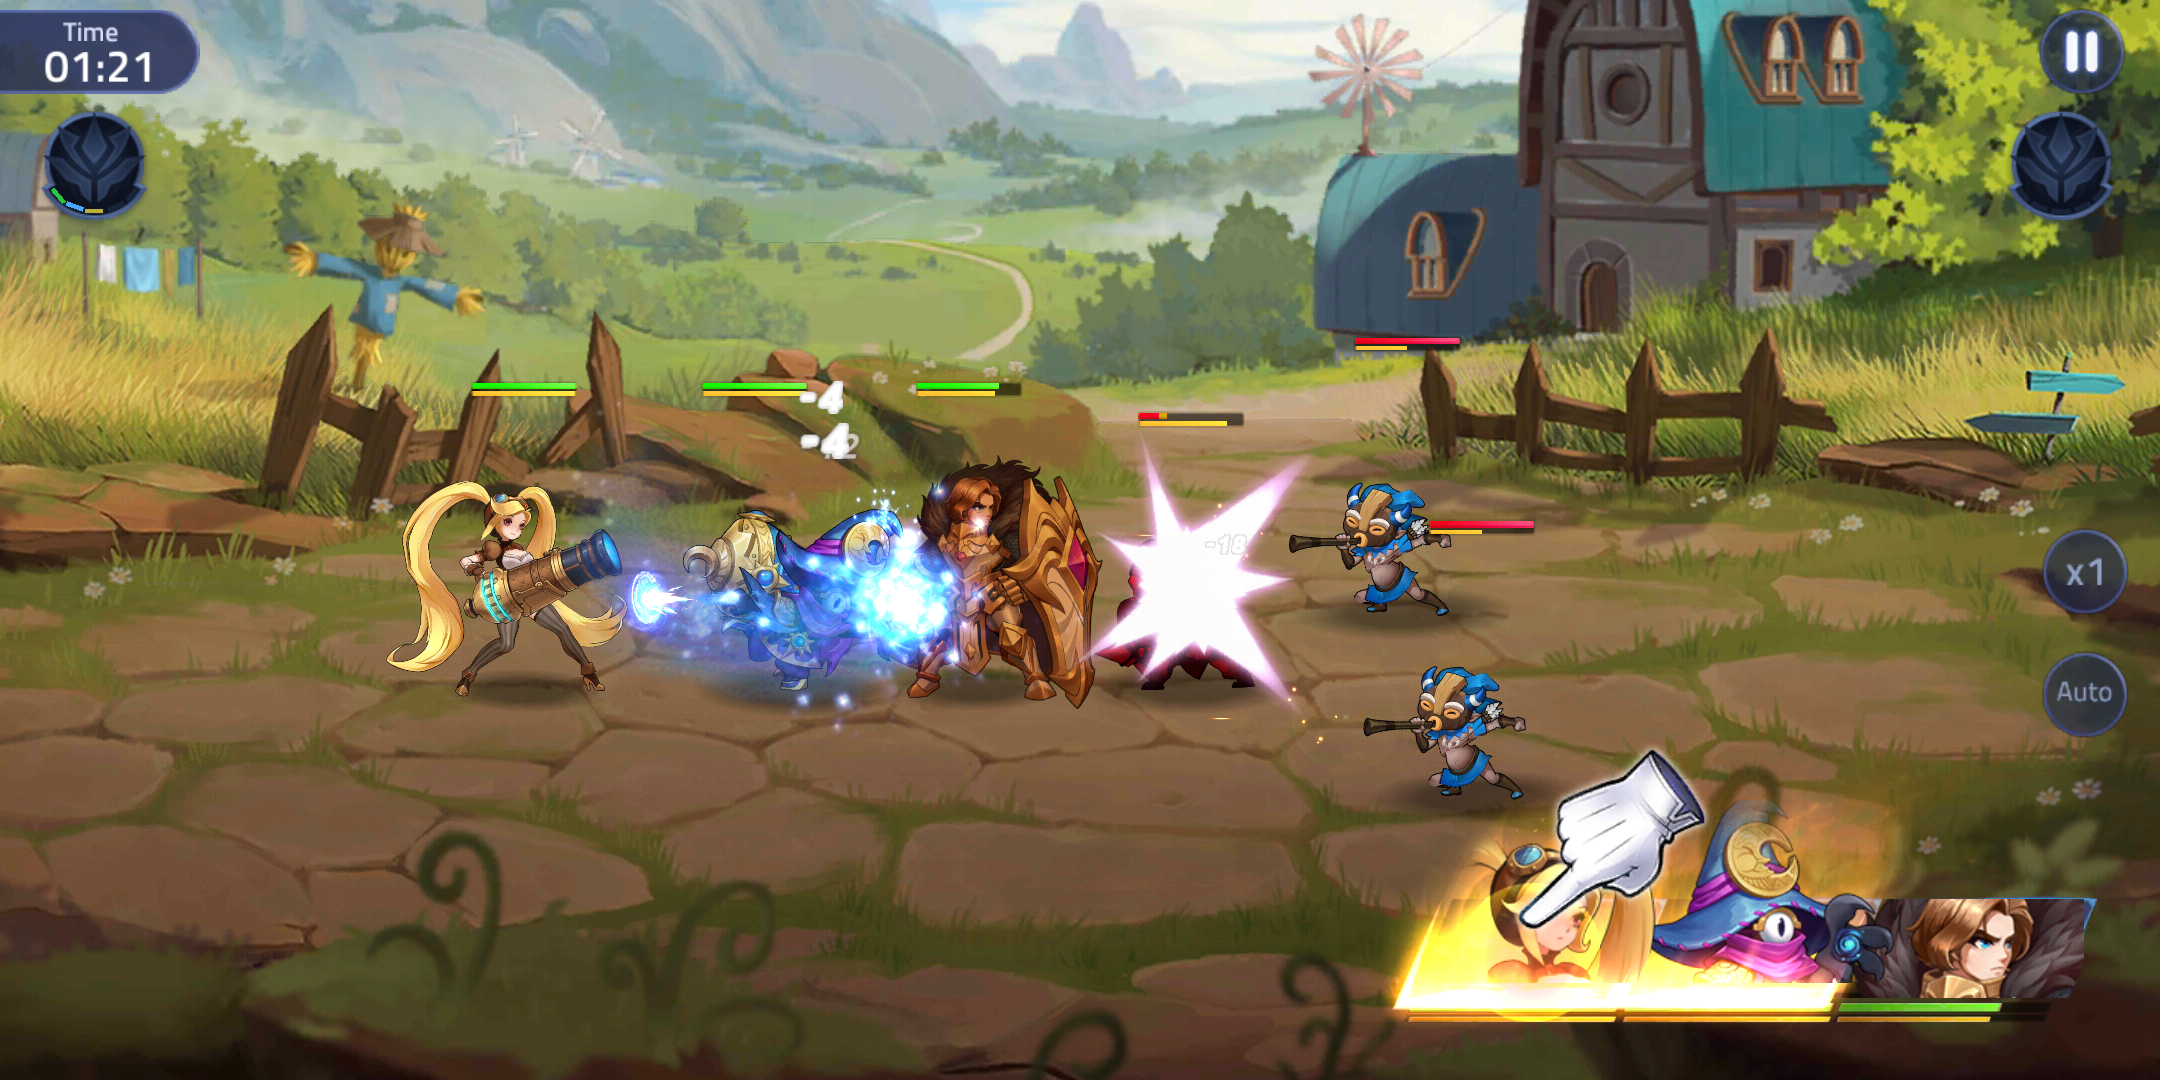 Screenshot of heroes and opponents fighting in Mobile Legends: Adventure